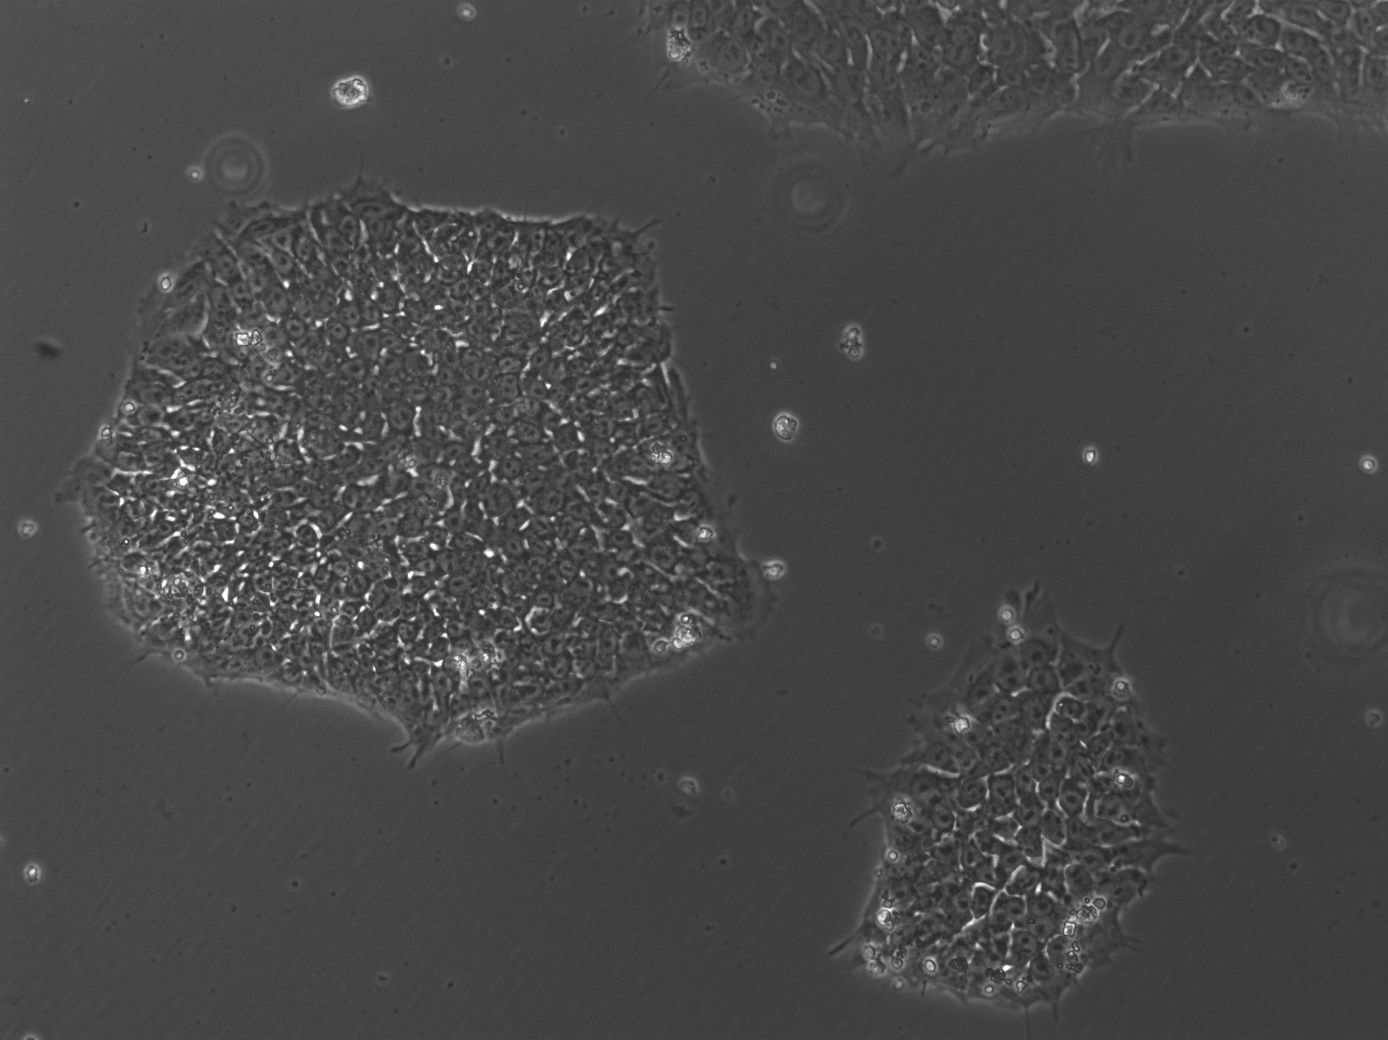 Human induced pluripotent stem cells (hiPSCs).